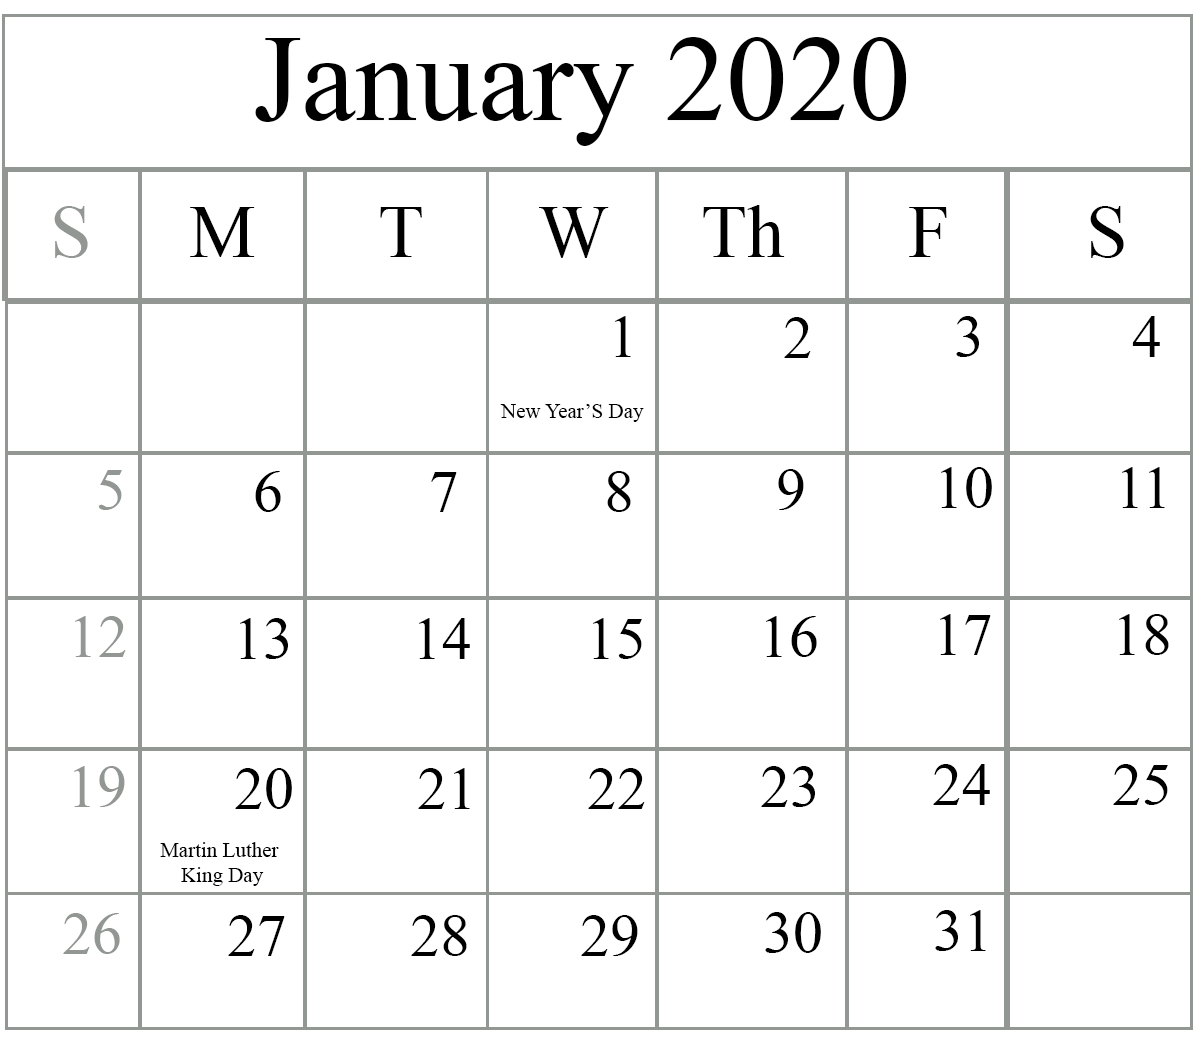 Free January 2020 Printable Calendar Blank In Pdf, Excel